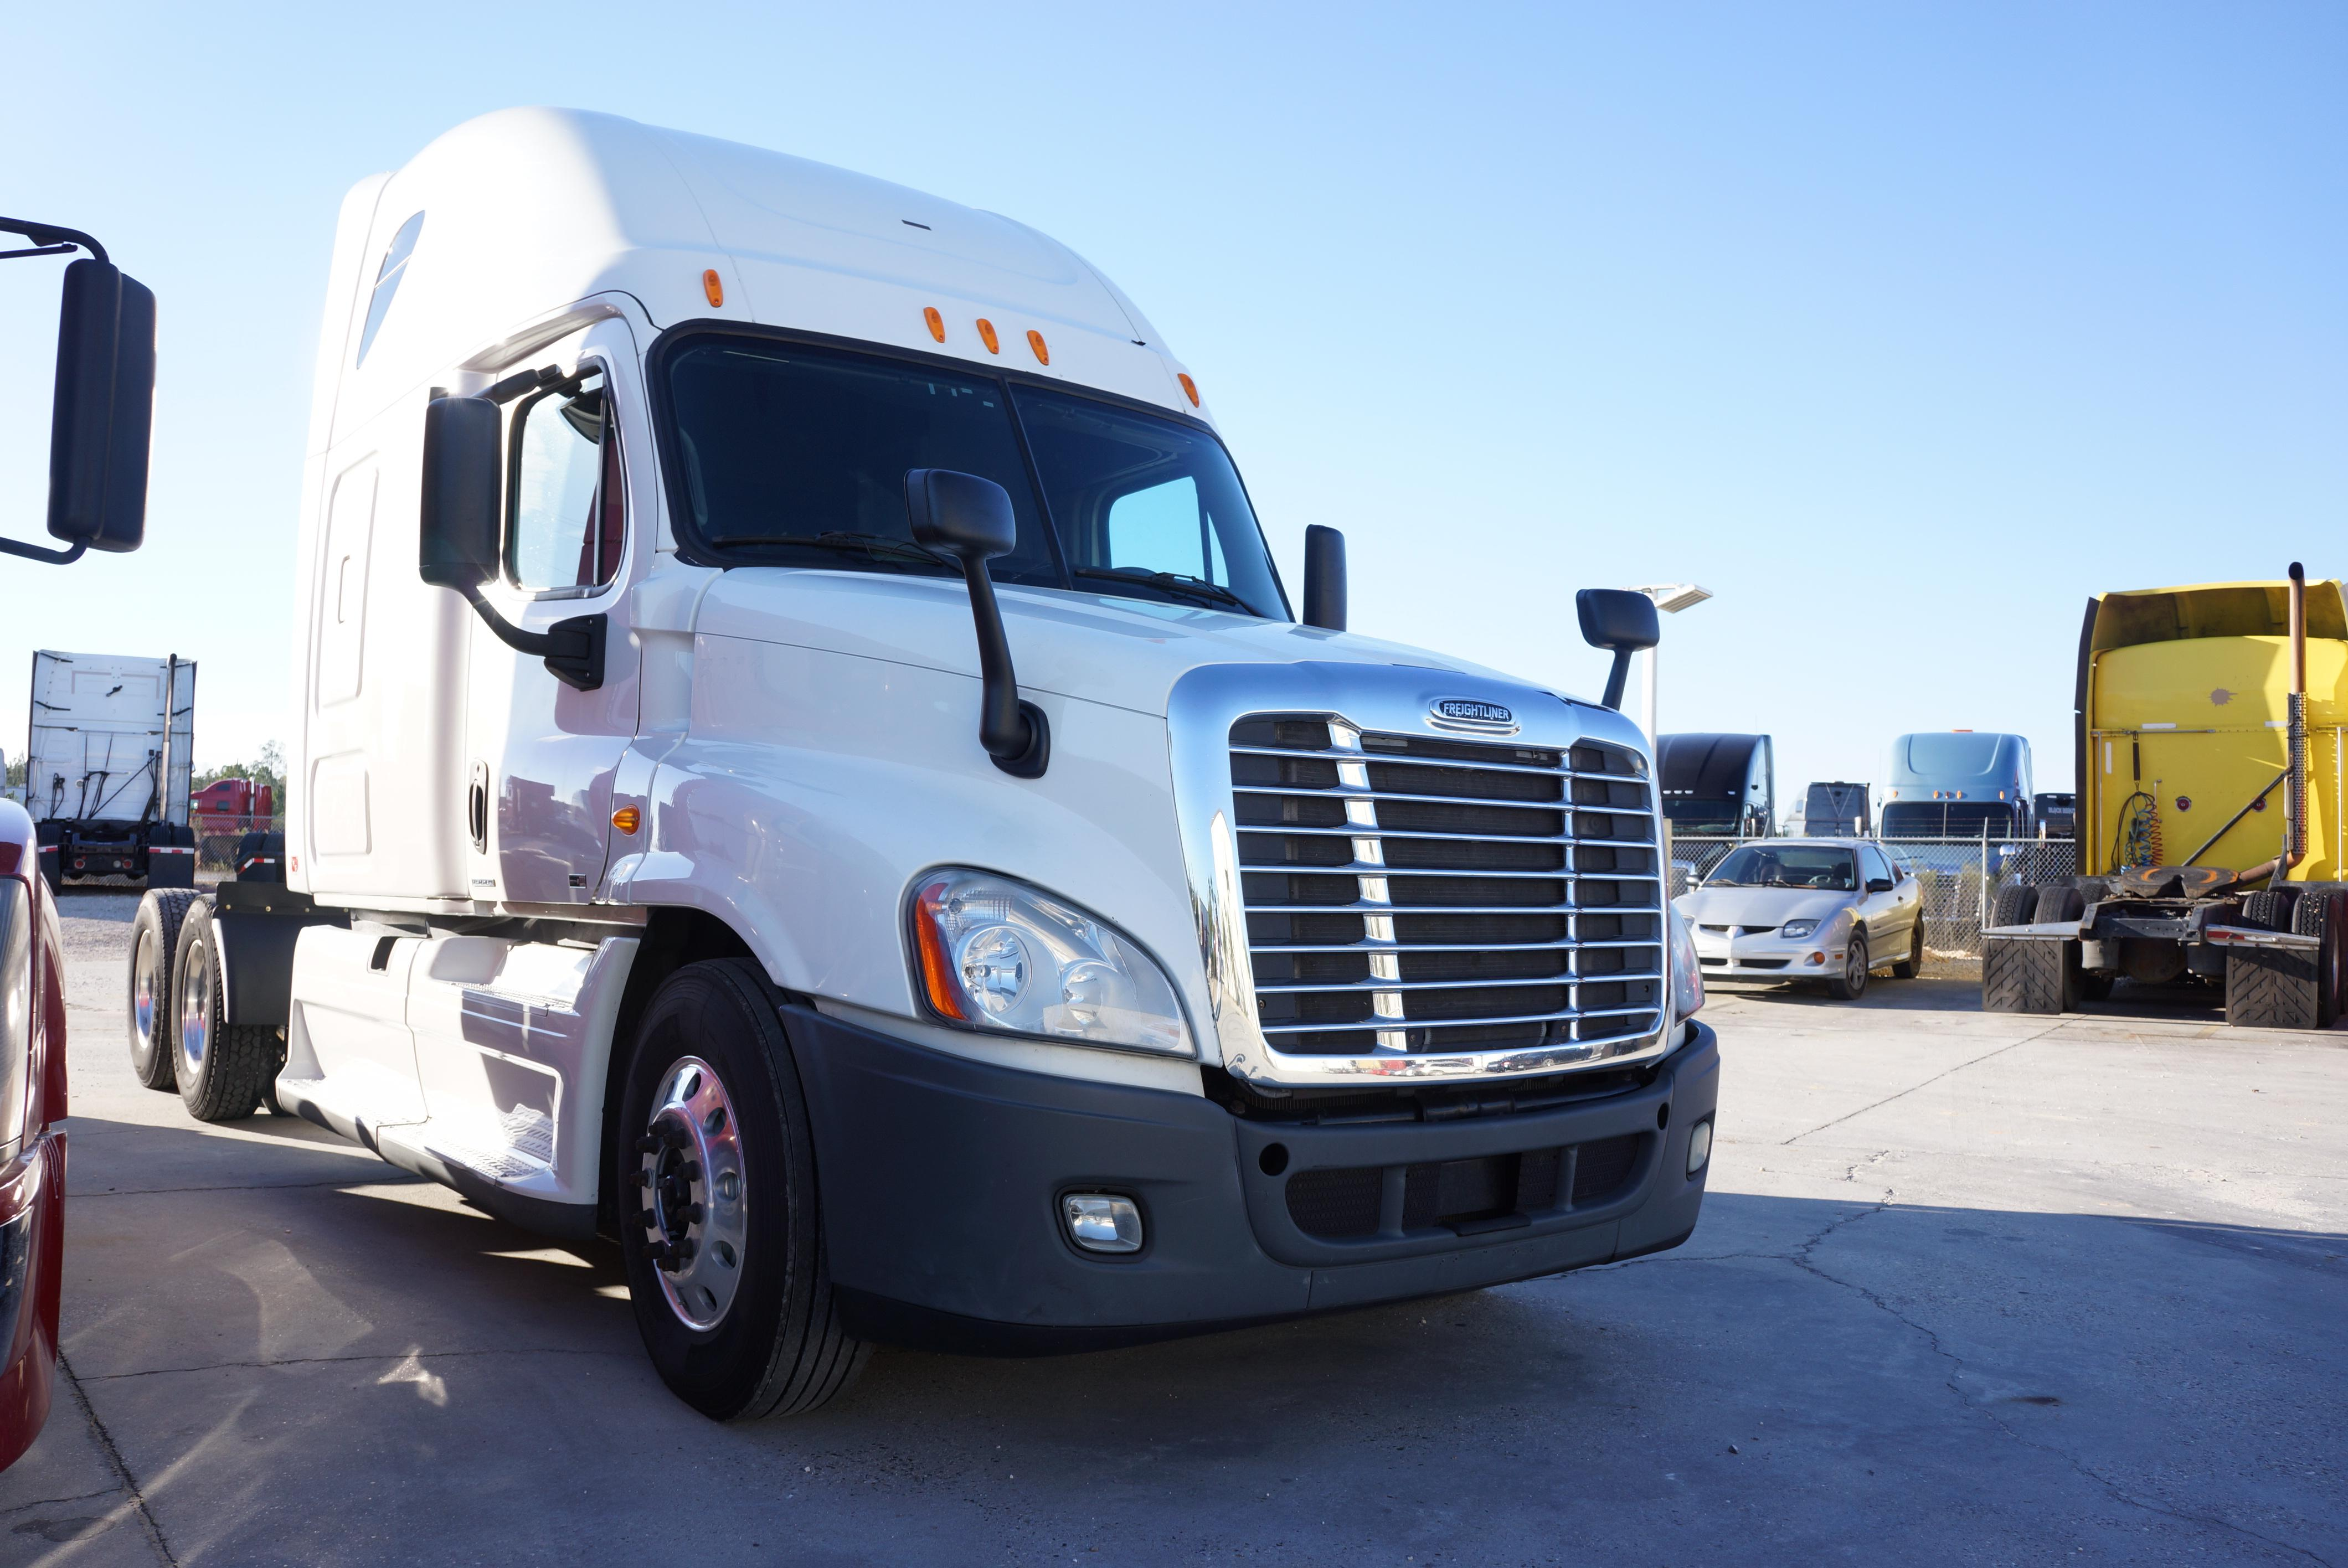 Used 2012 Freightliner Cascadia for sale-59234855